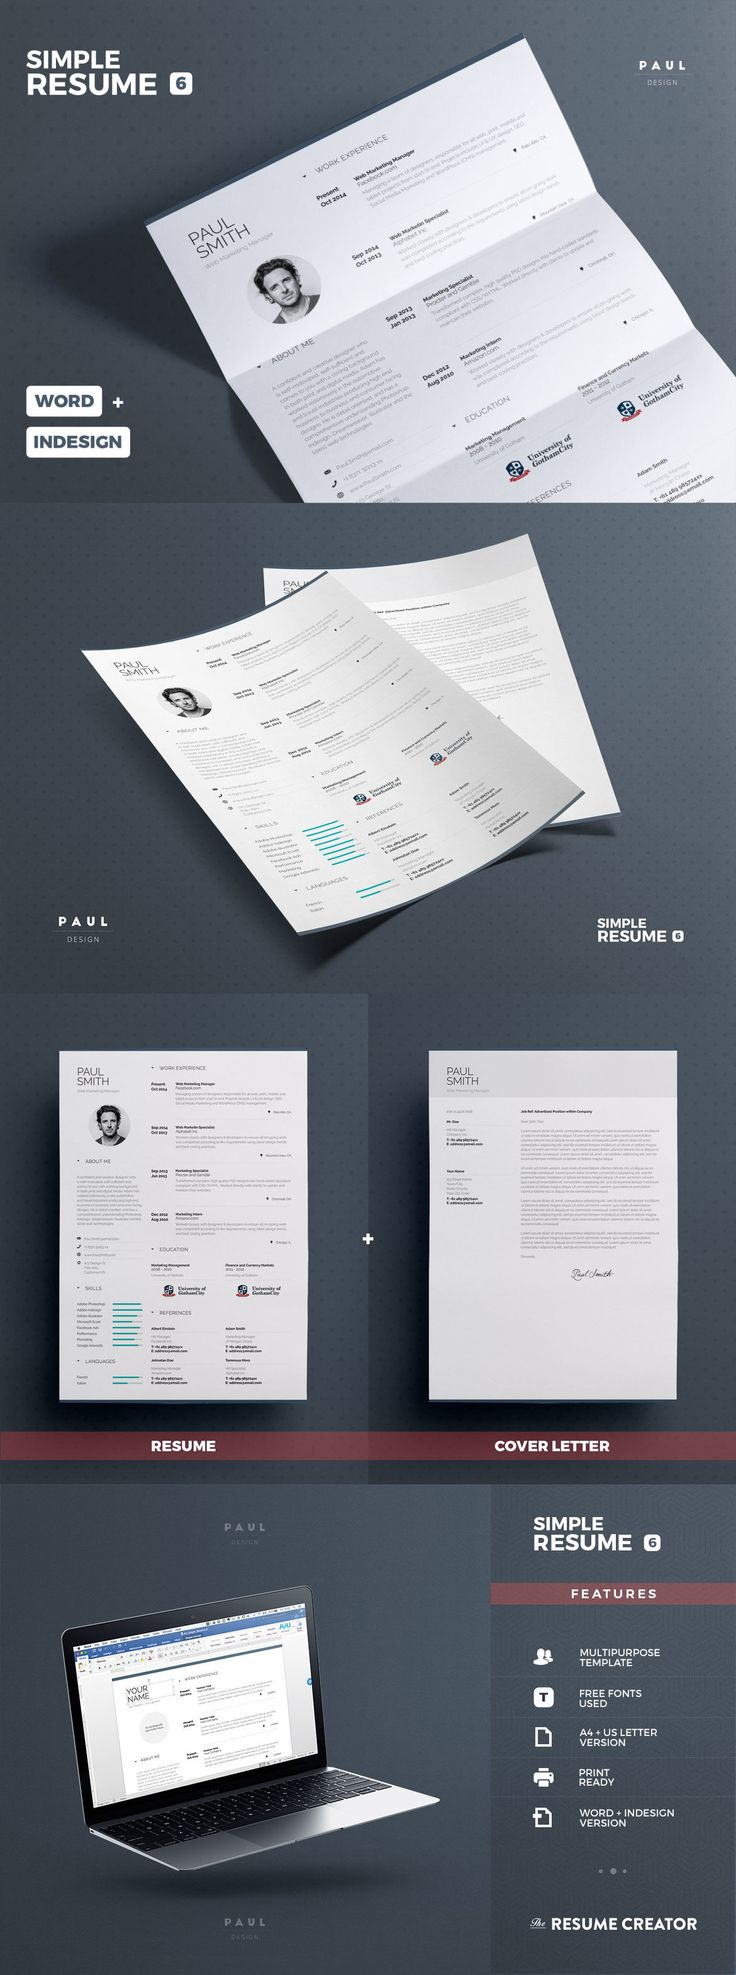 professional and creative infographic resume cv design template indesign indd ms word